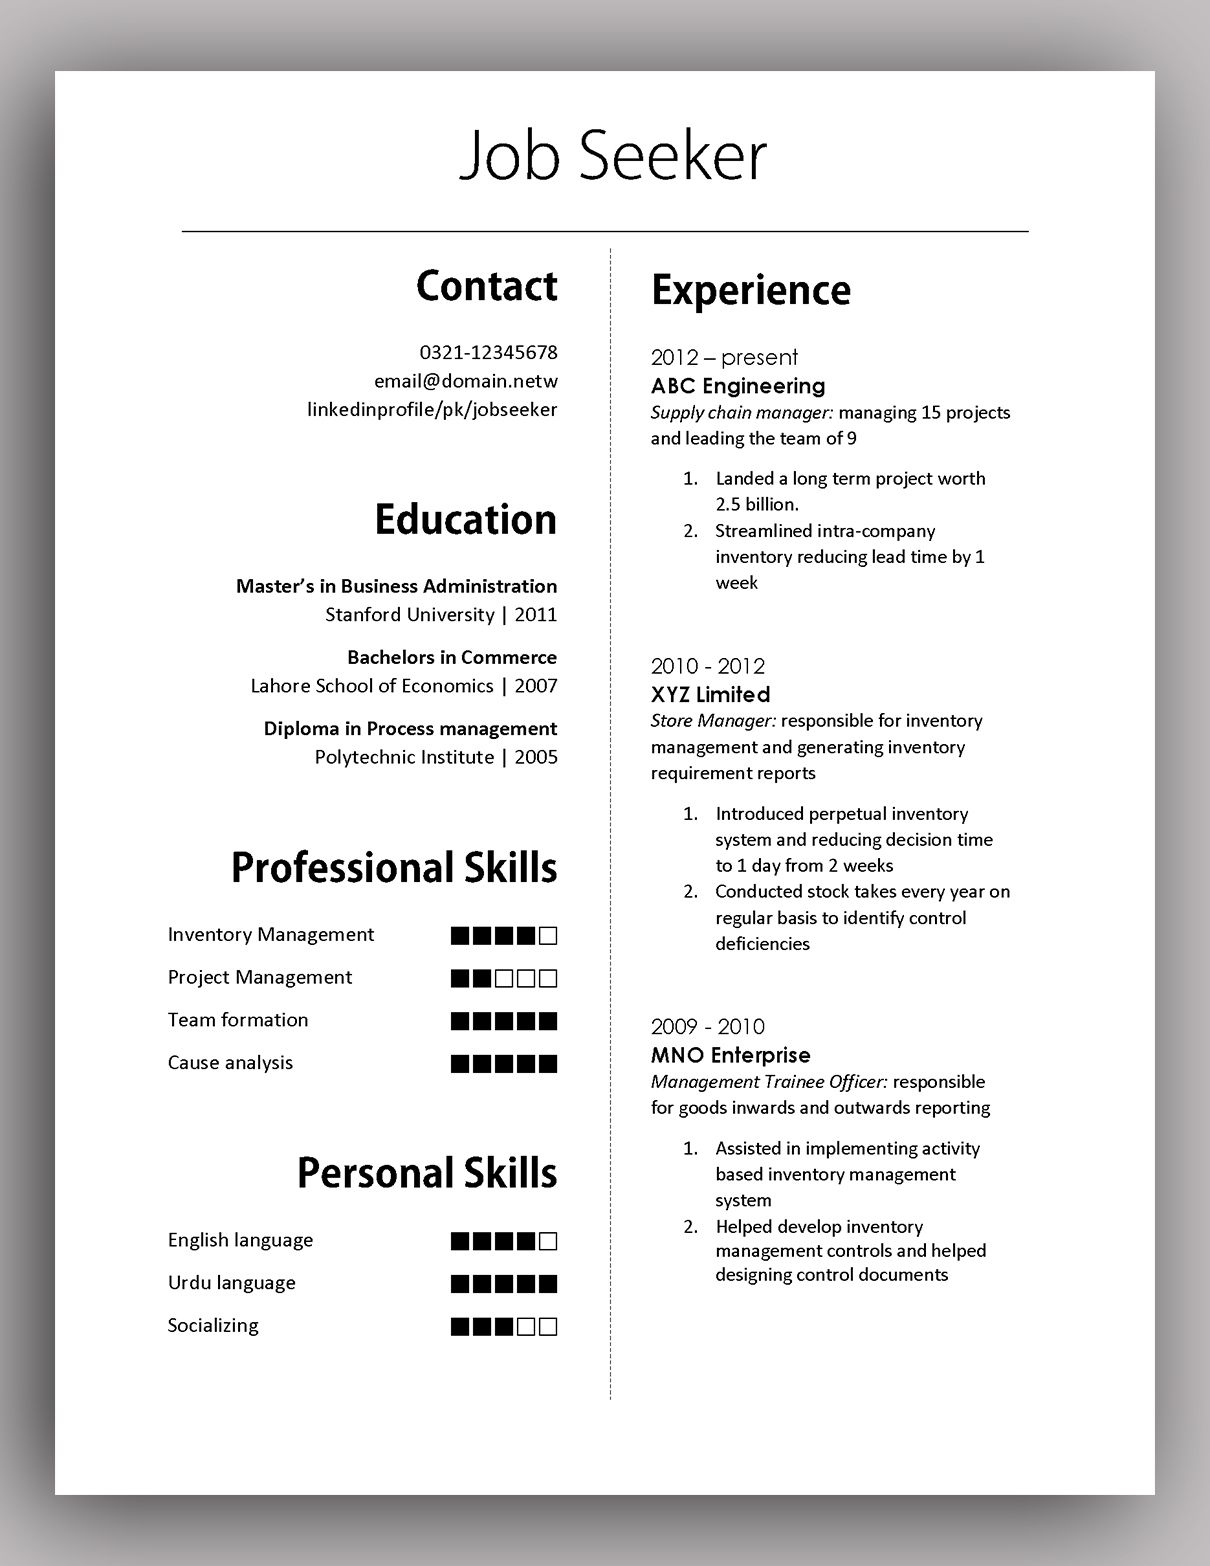 Job Cv Cv Images For Job Bussines Proposal Resume Template How